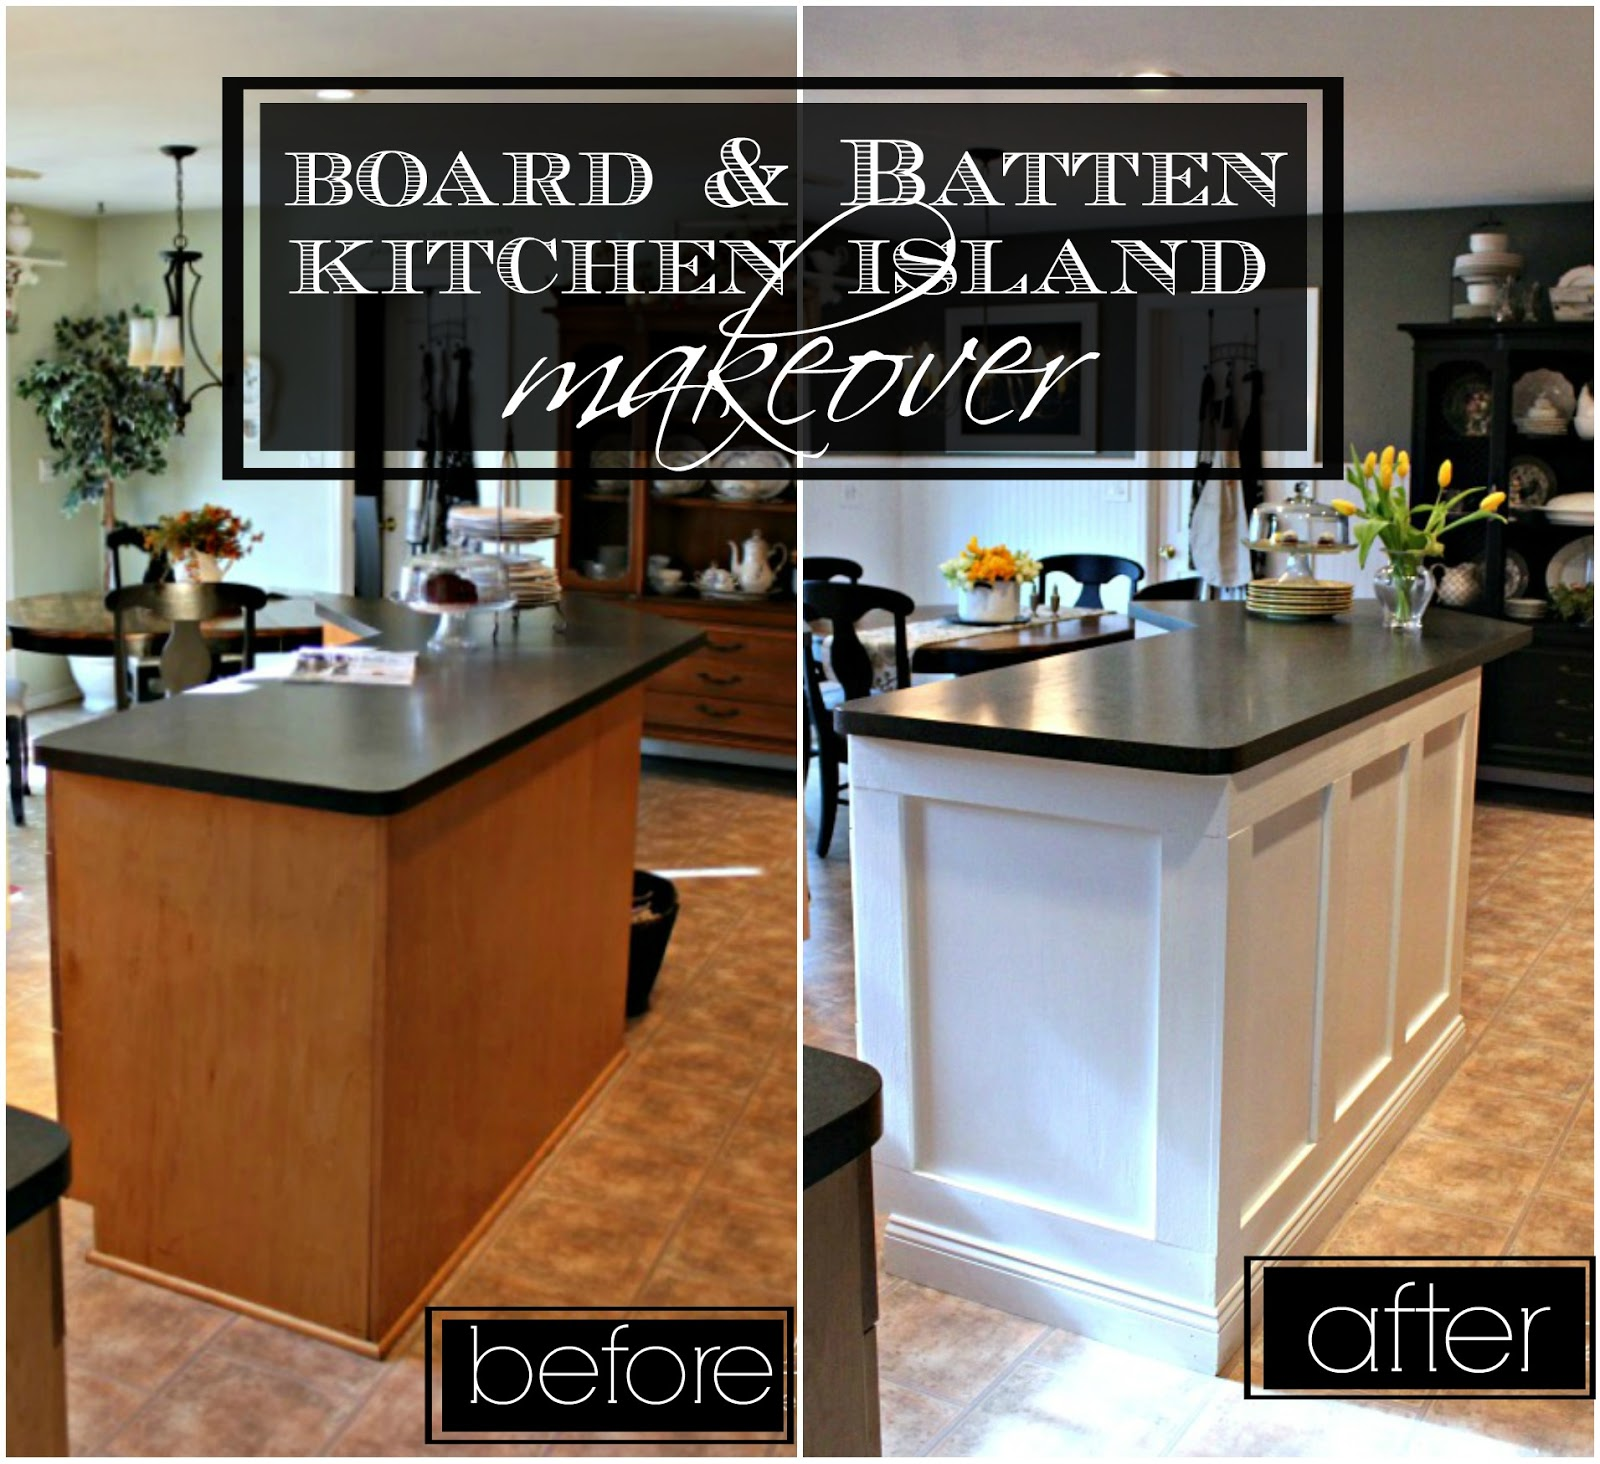 21 Rosemary Lane: Board & Batten Kitchen Island Makeover